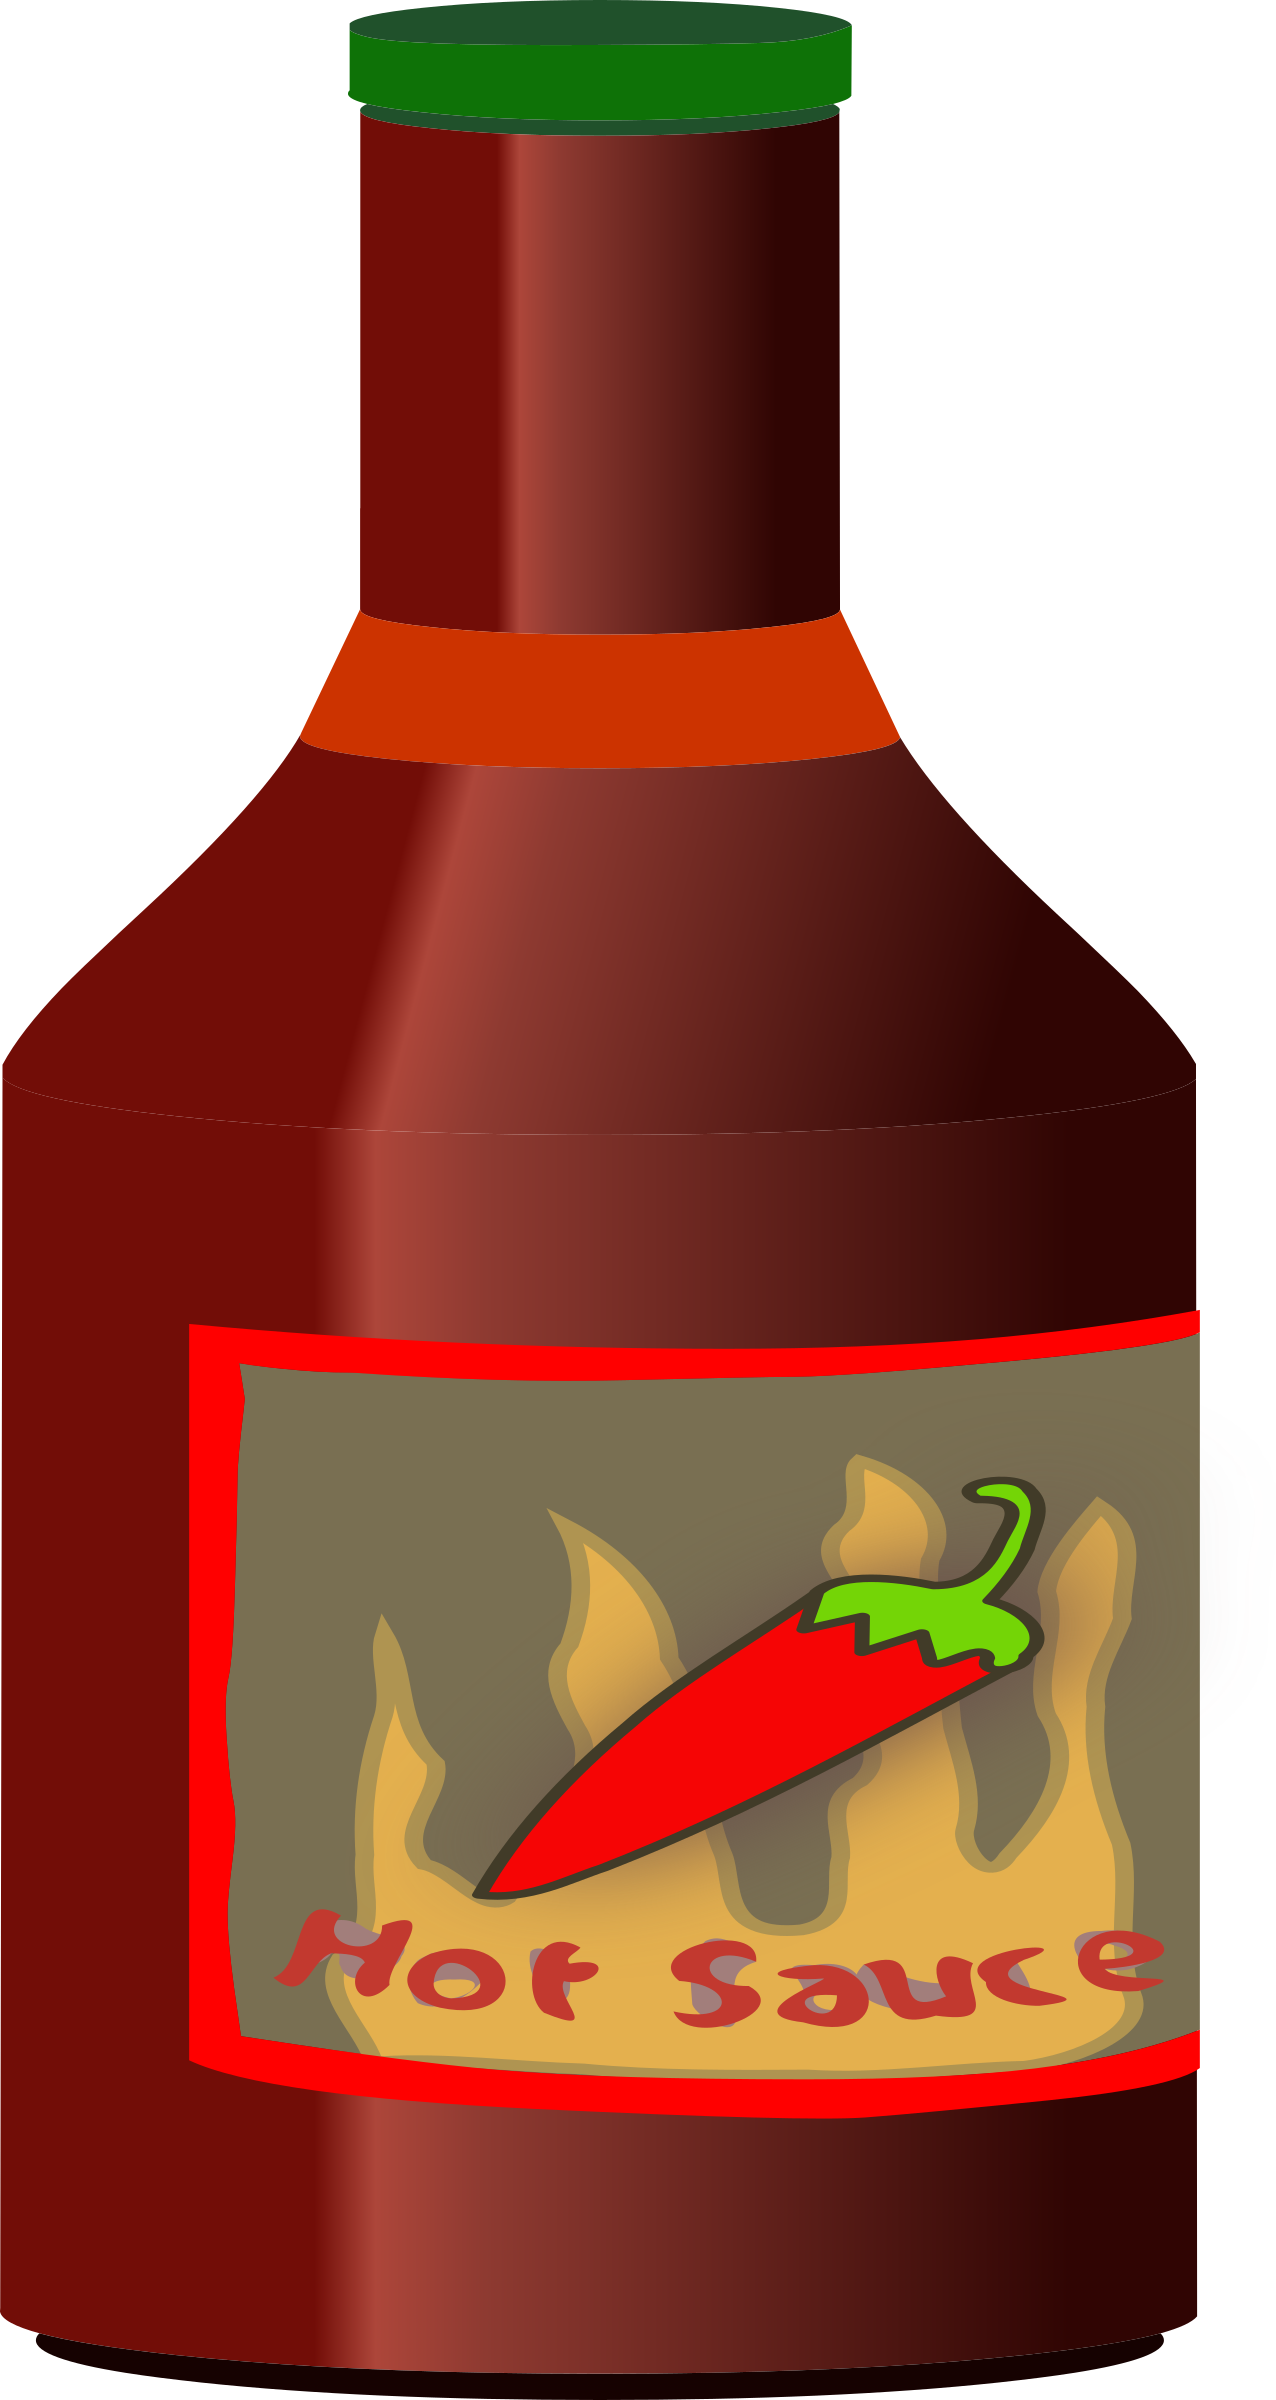 Chili drawing hot sauce. Collection of clipart